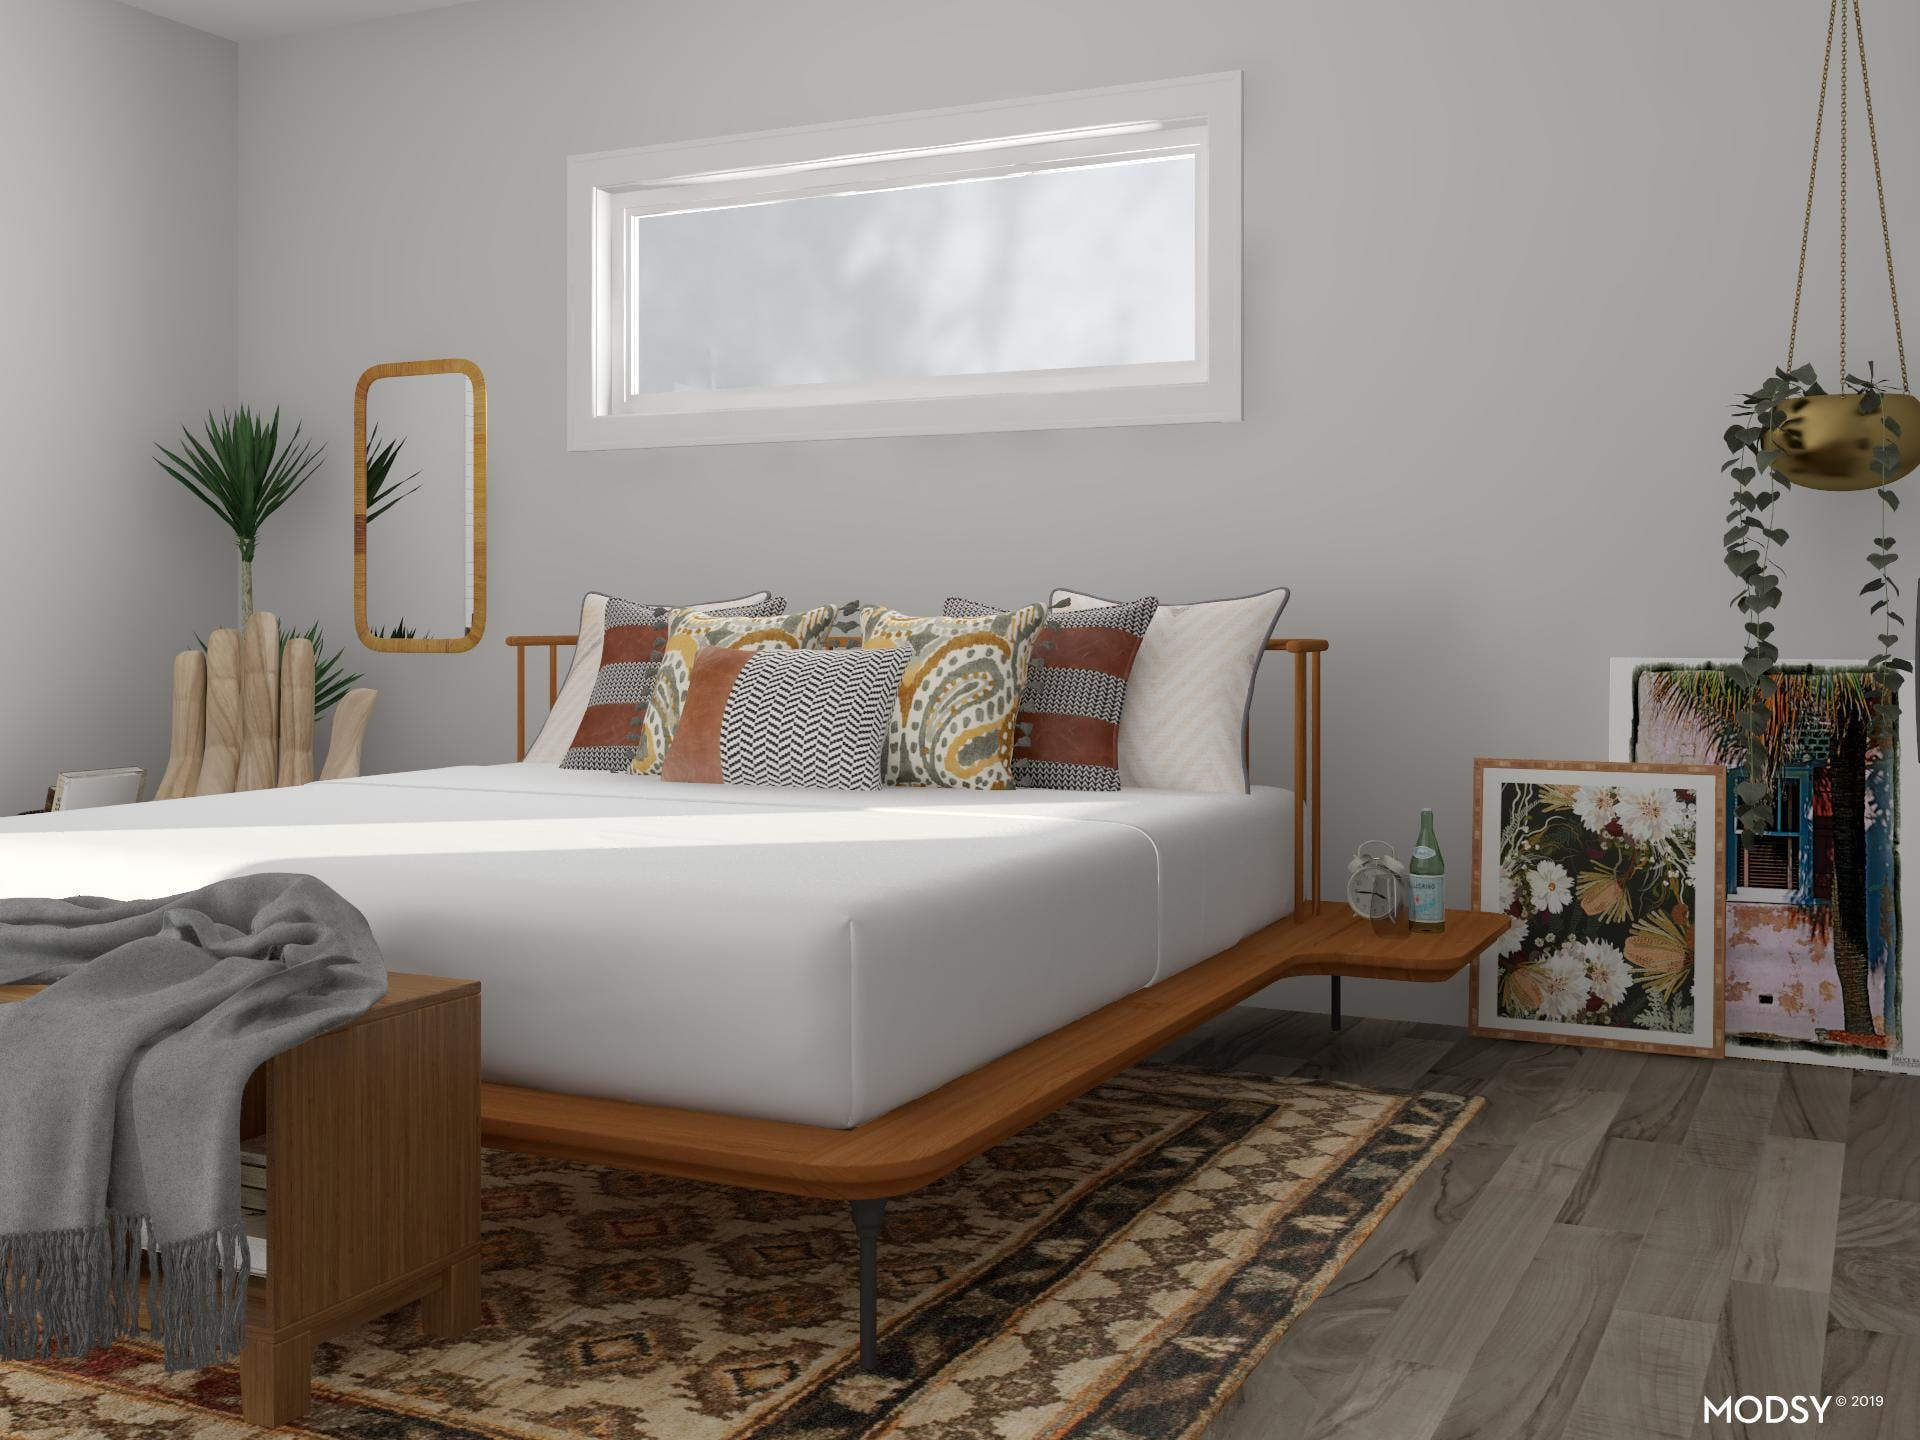 Earth Tones For Days: Bedroom